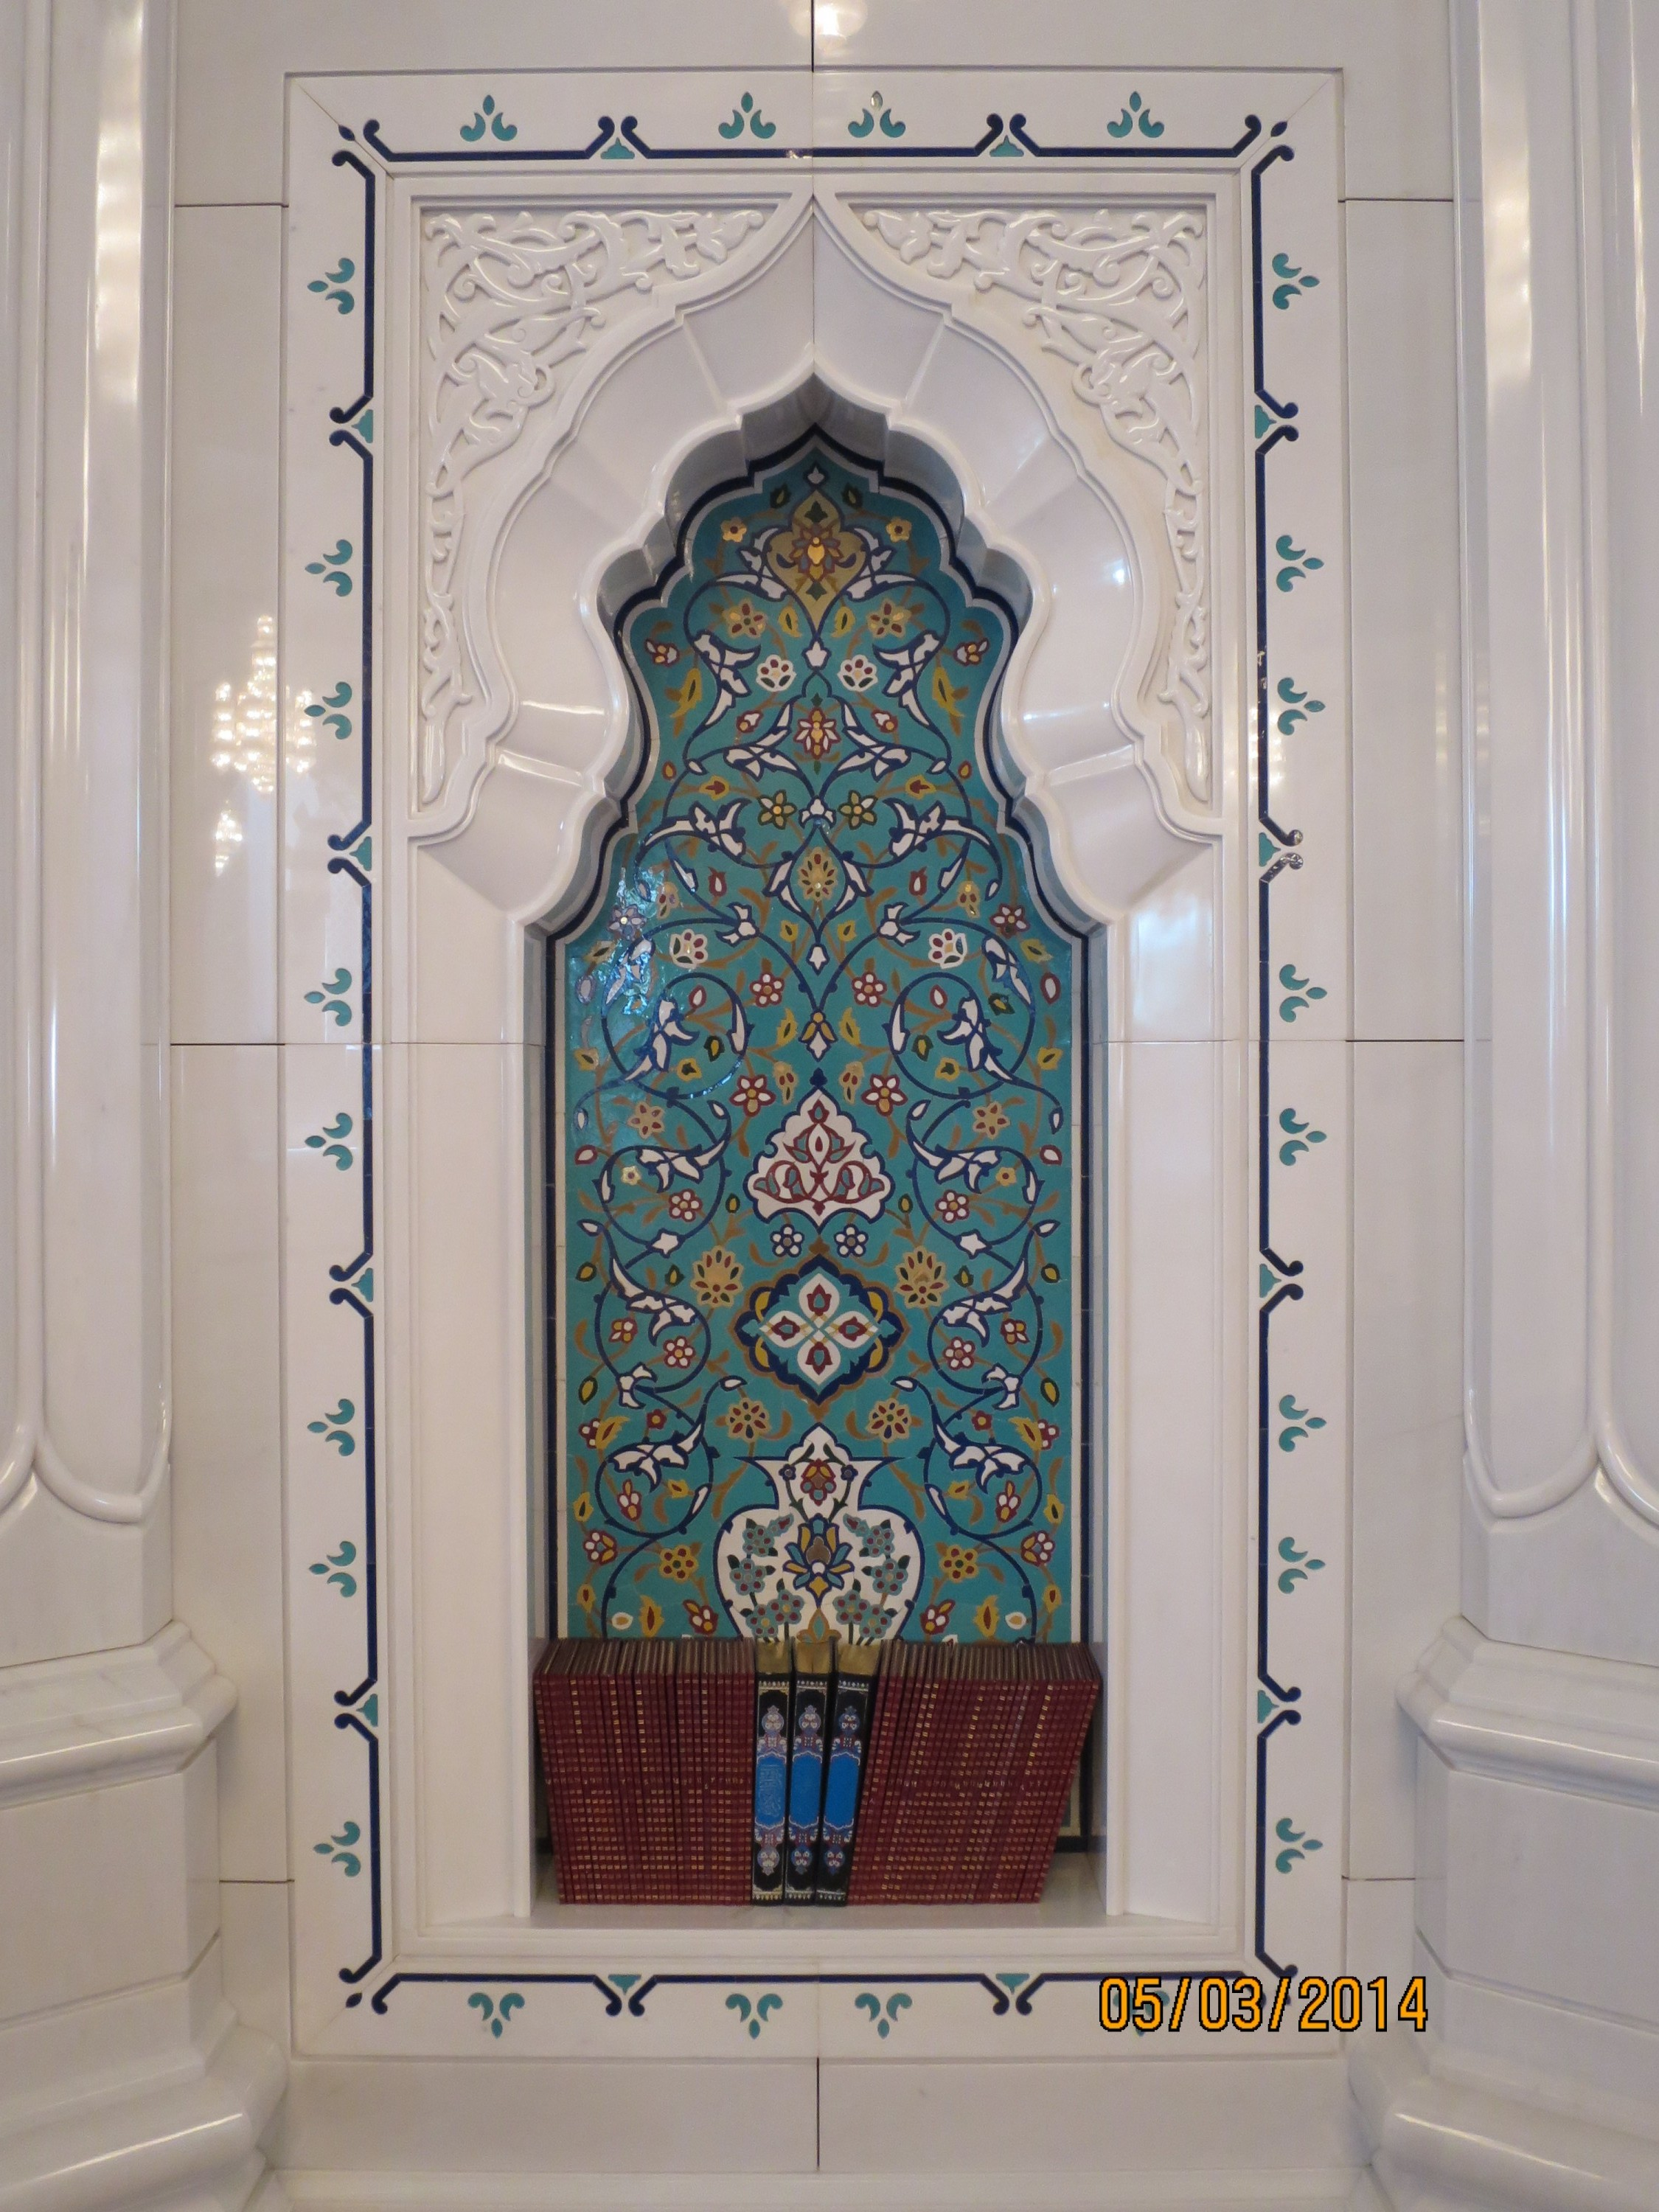 beautiful mosaics throughout the mosque